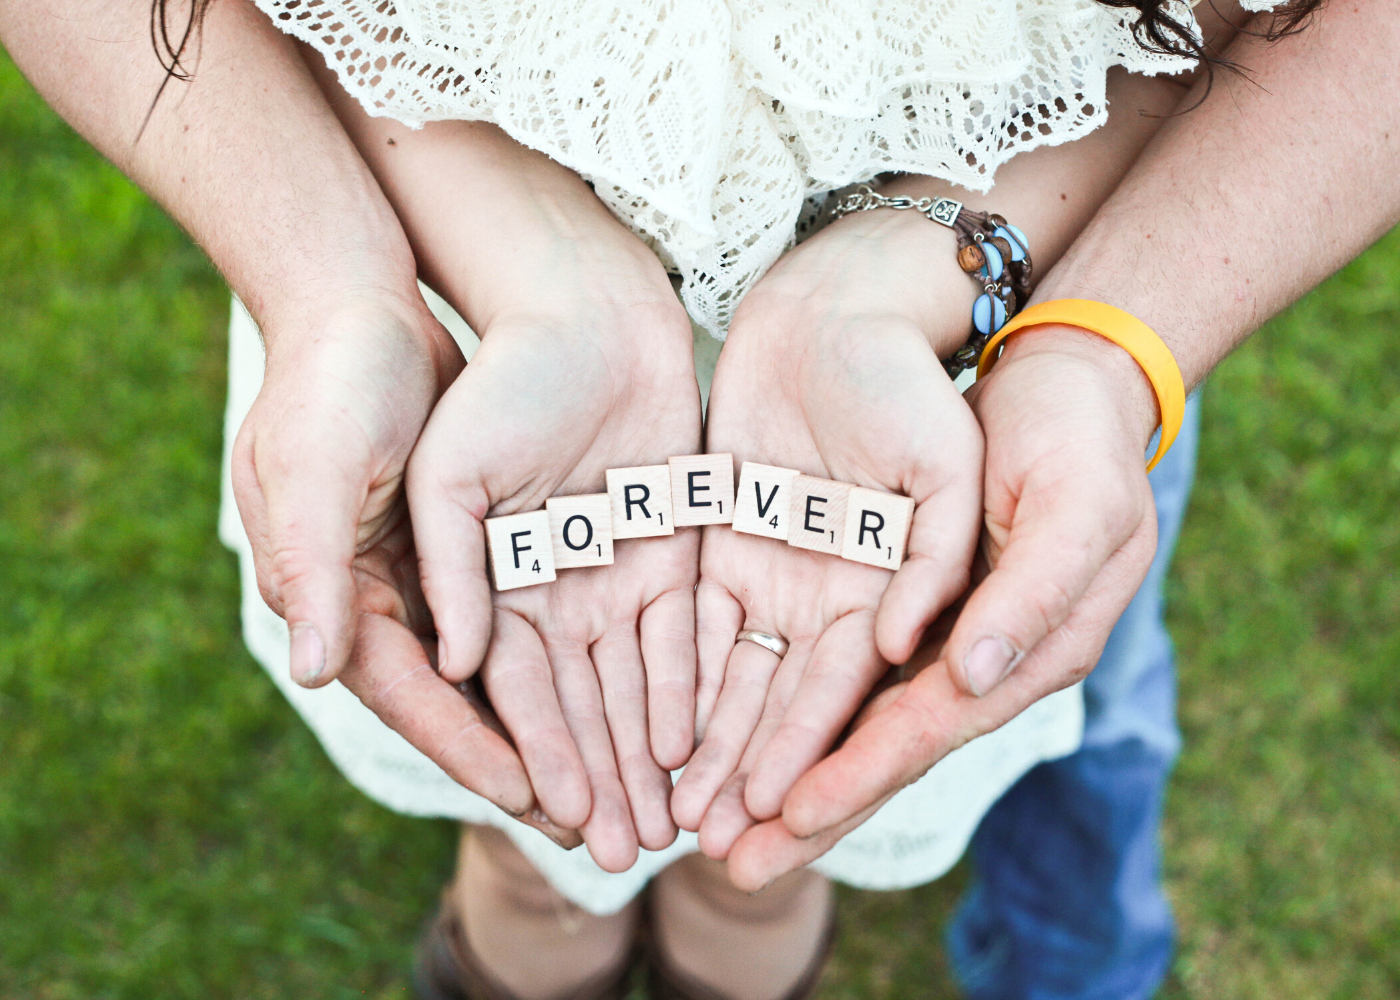 Popping the question? Get your boo to say yes at these romantic proposal spots